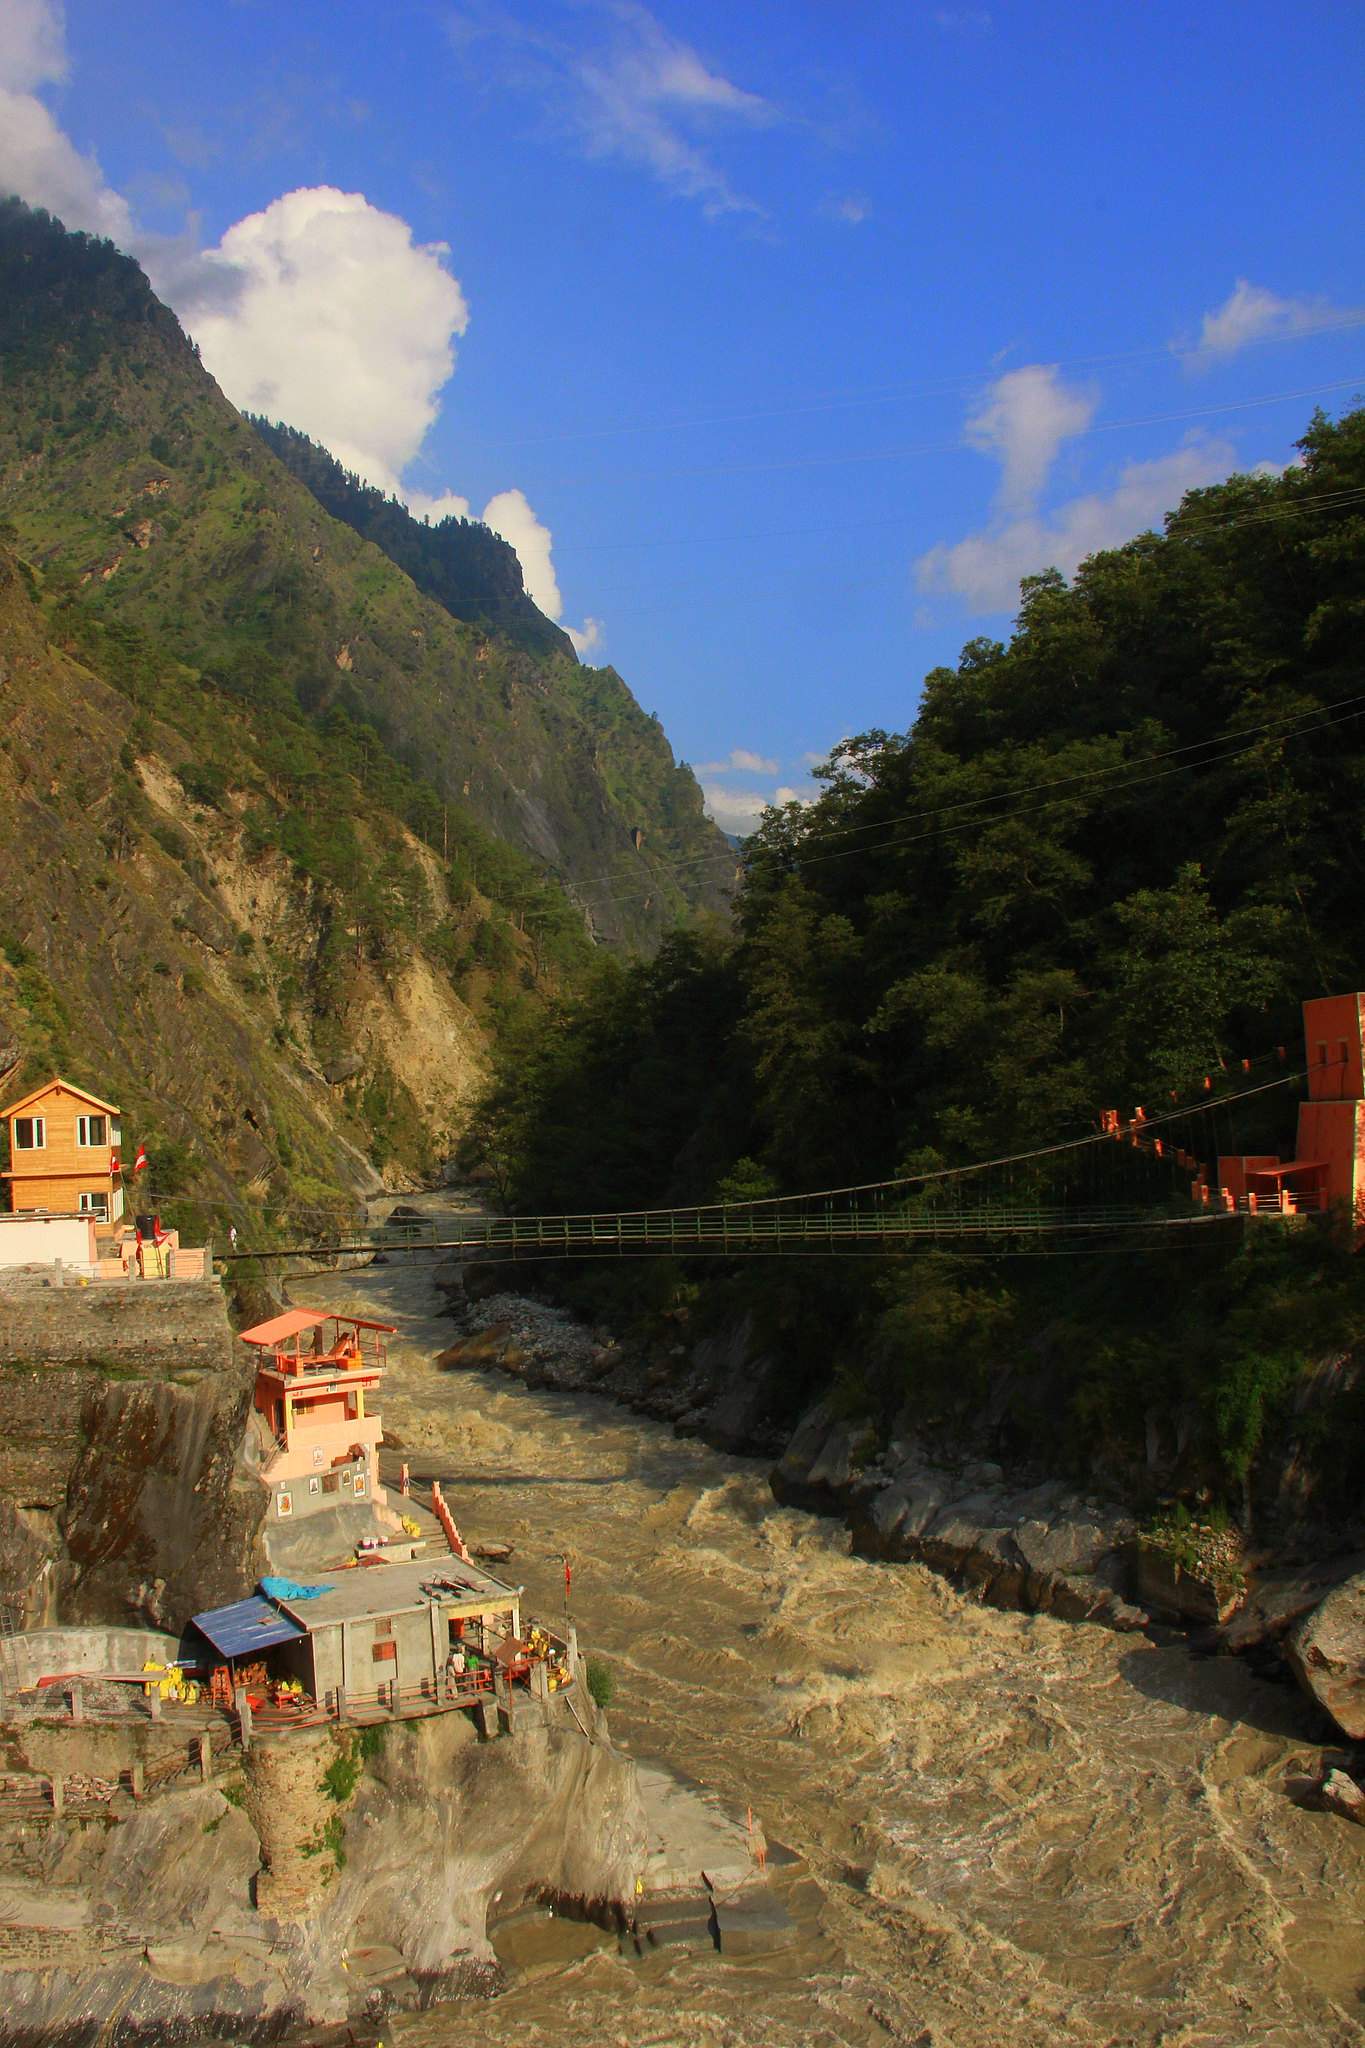 Vishnuprayag is near Joshimath